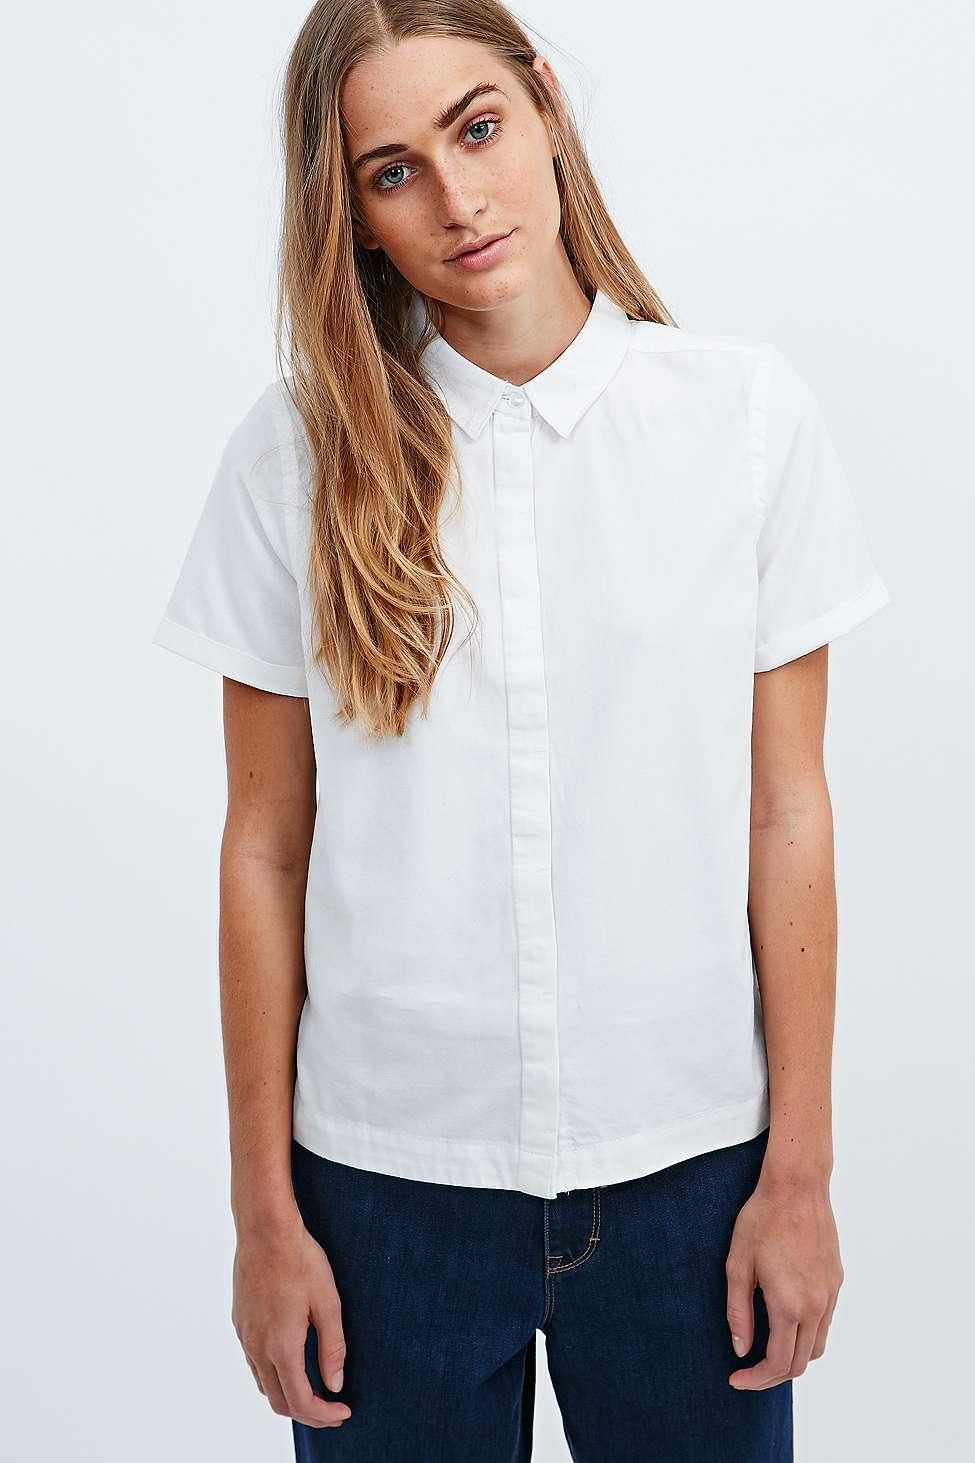 805948c1 Why You Need a Boxy, Button-Up T-Shirt - Waven Short Sleeve Oxford Shirt,  $41.60; at Urban Outfitters